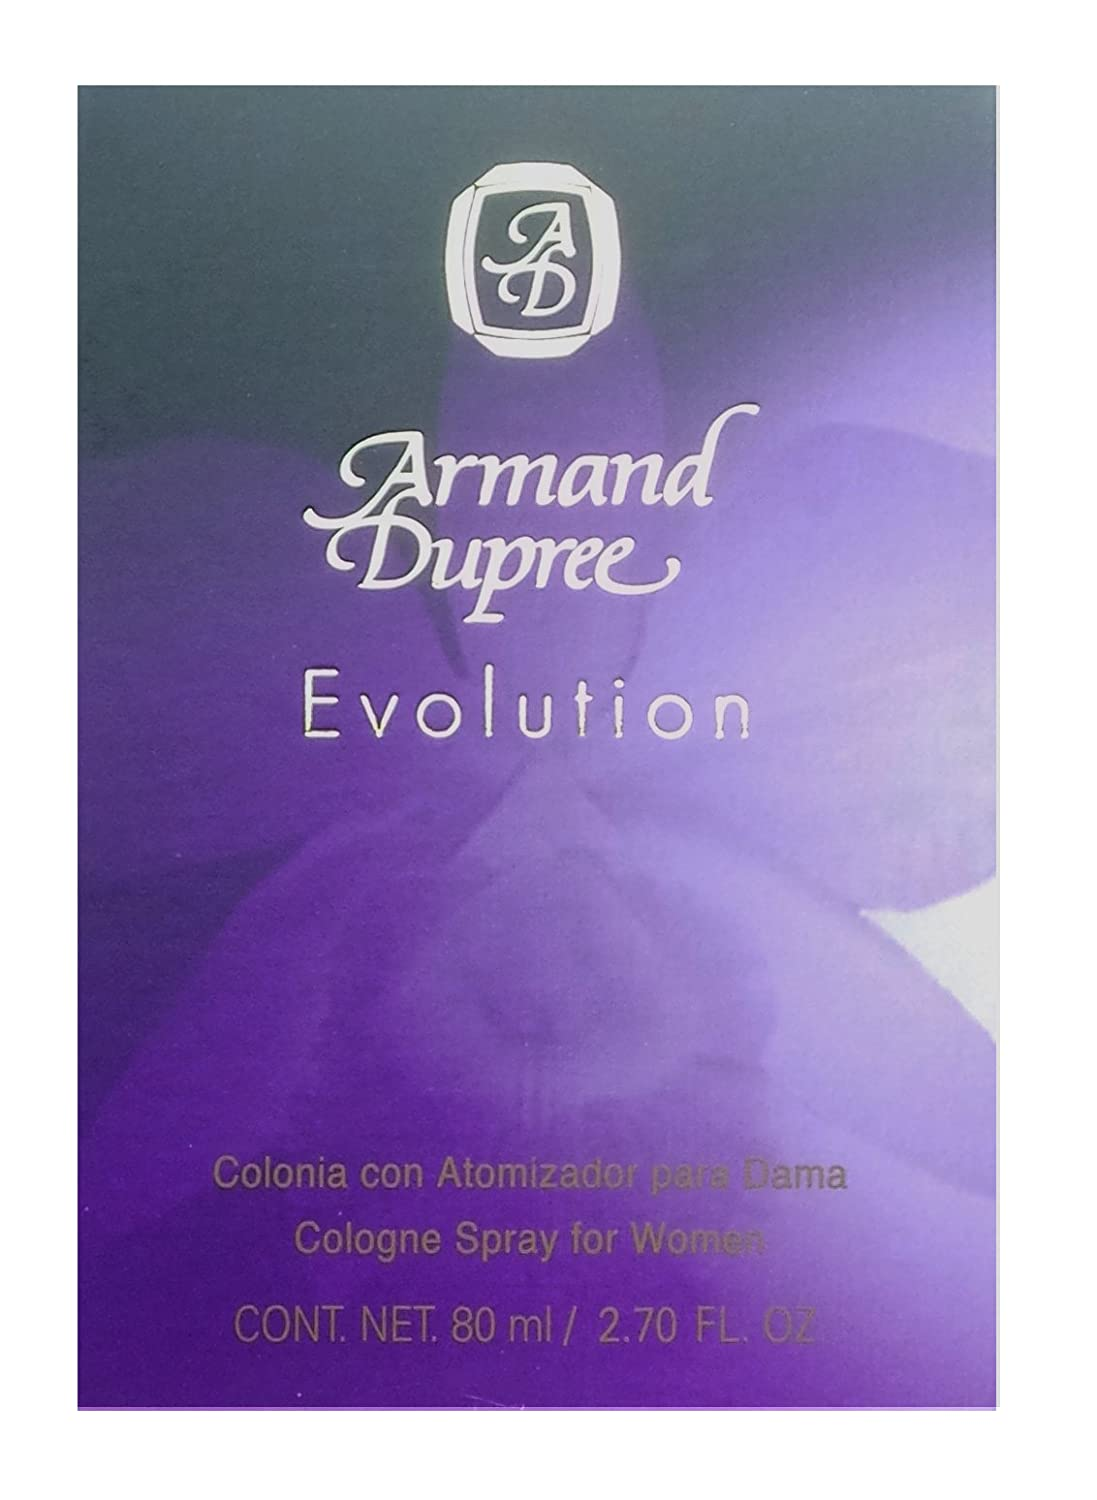 Amazon.com : Armand Dupree - Evolution Colonia con Atomizador para Dama Cologne Spray for Women 80 ml / 2.70 fl oz : Beauty